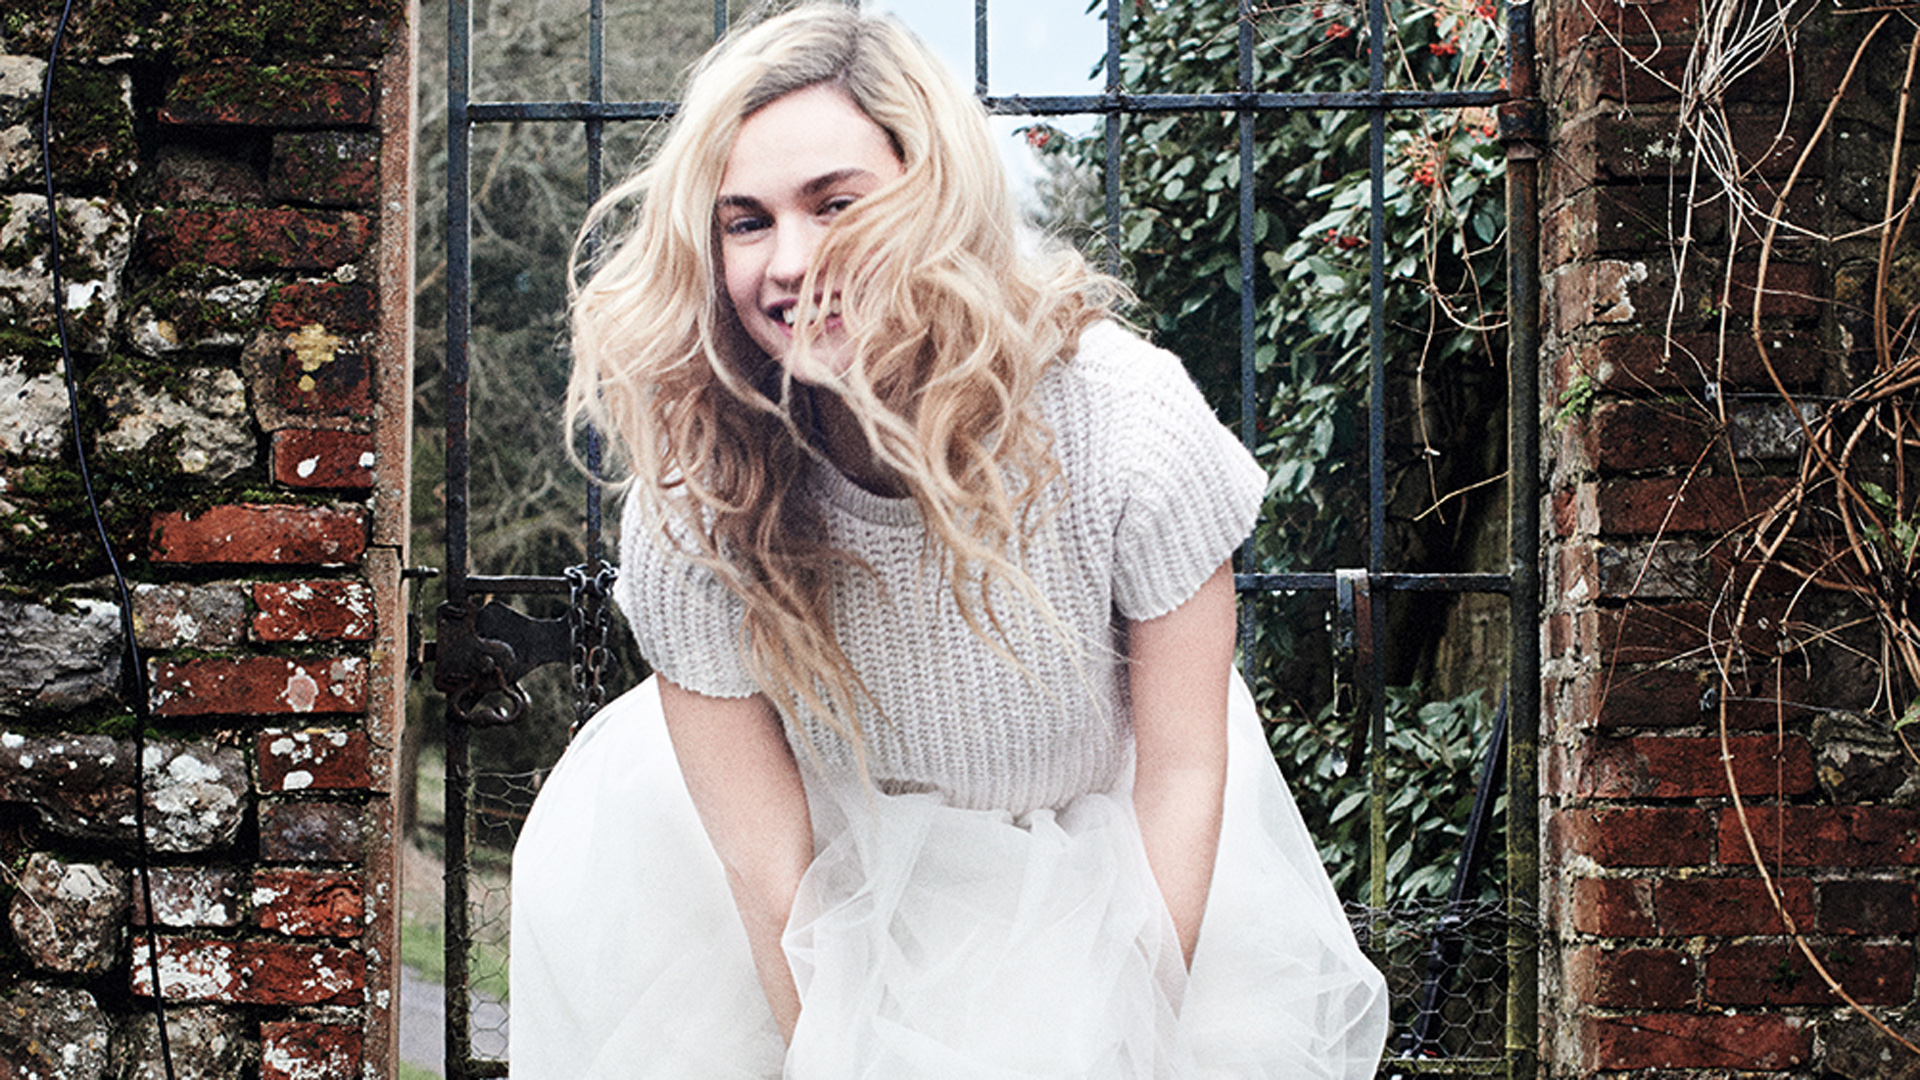 Lily James Wallpapers Lily James Photos Lily James Pics Lily James 1920x1080